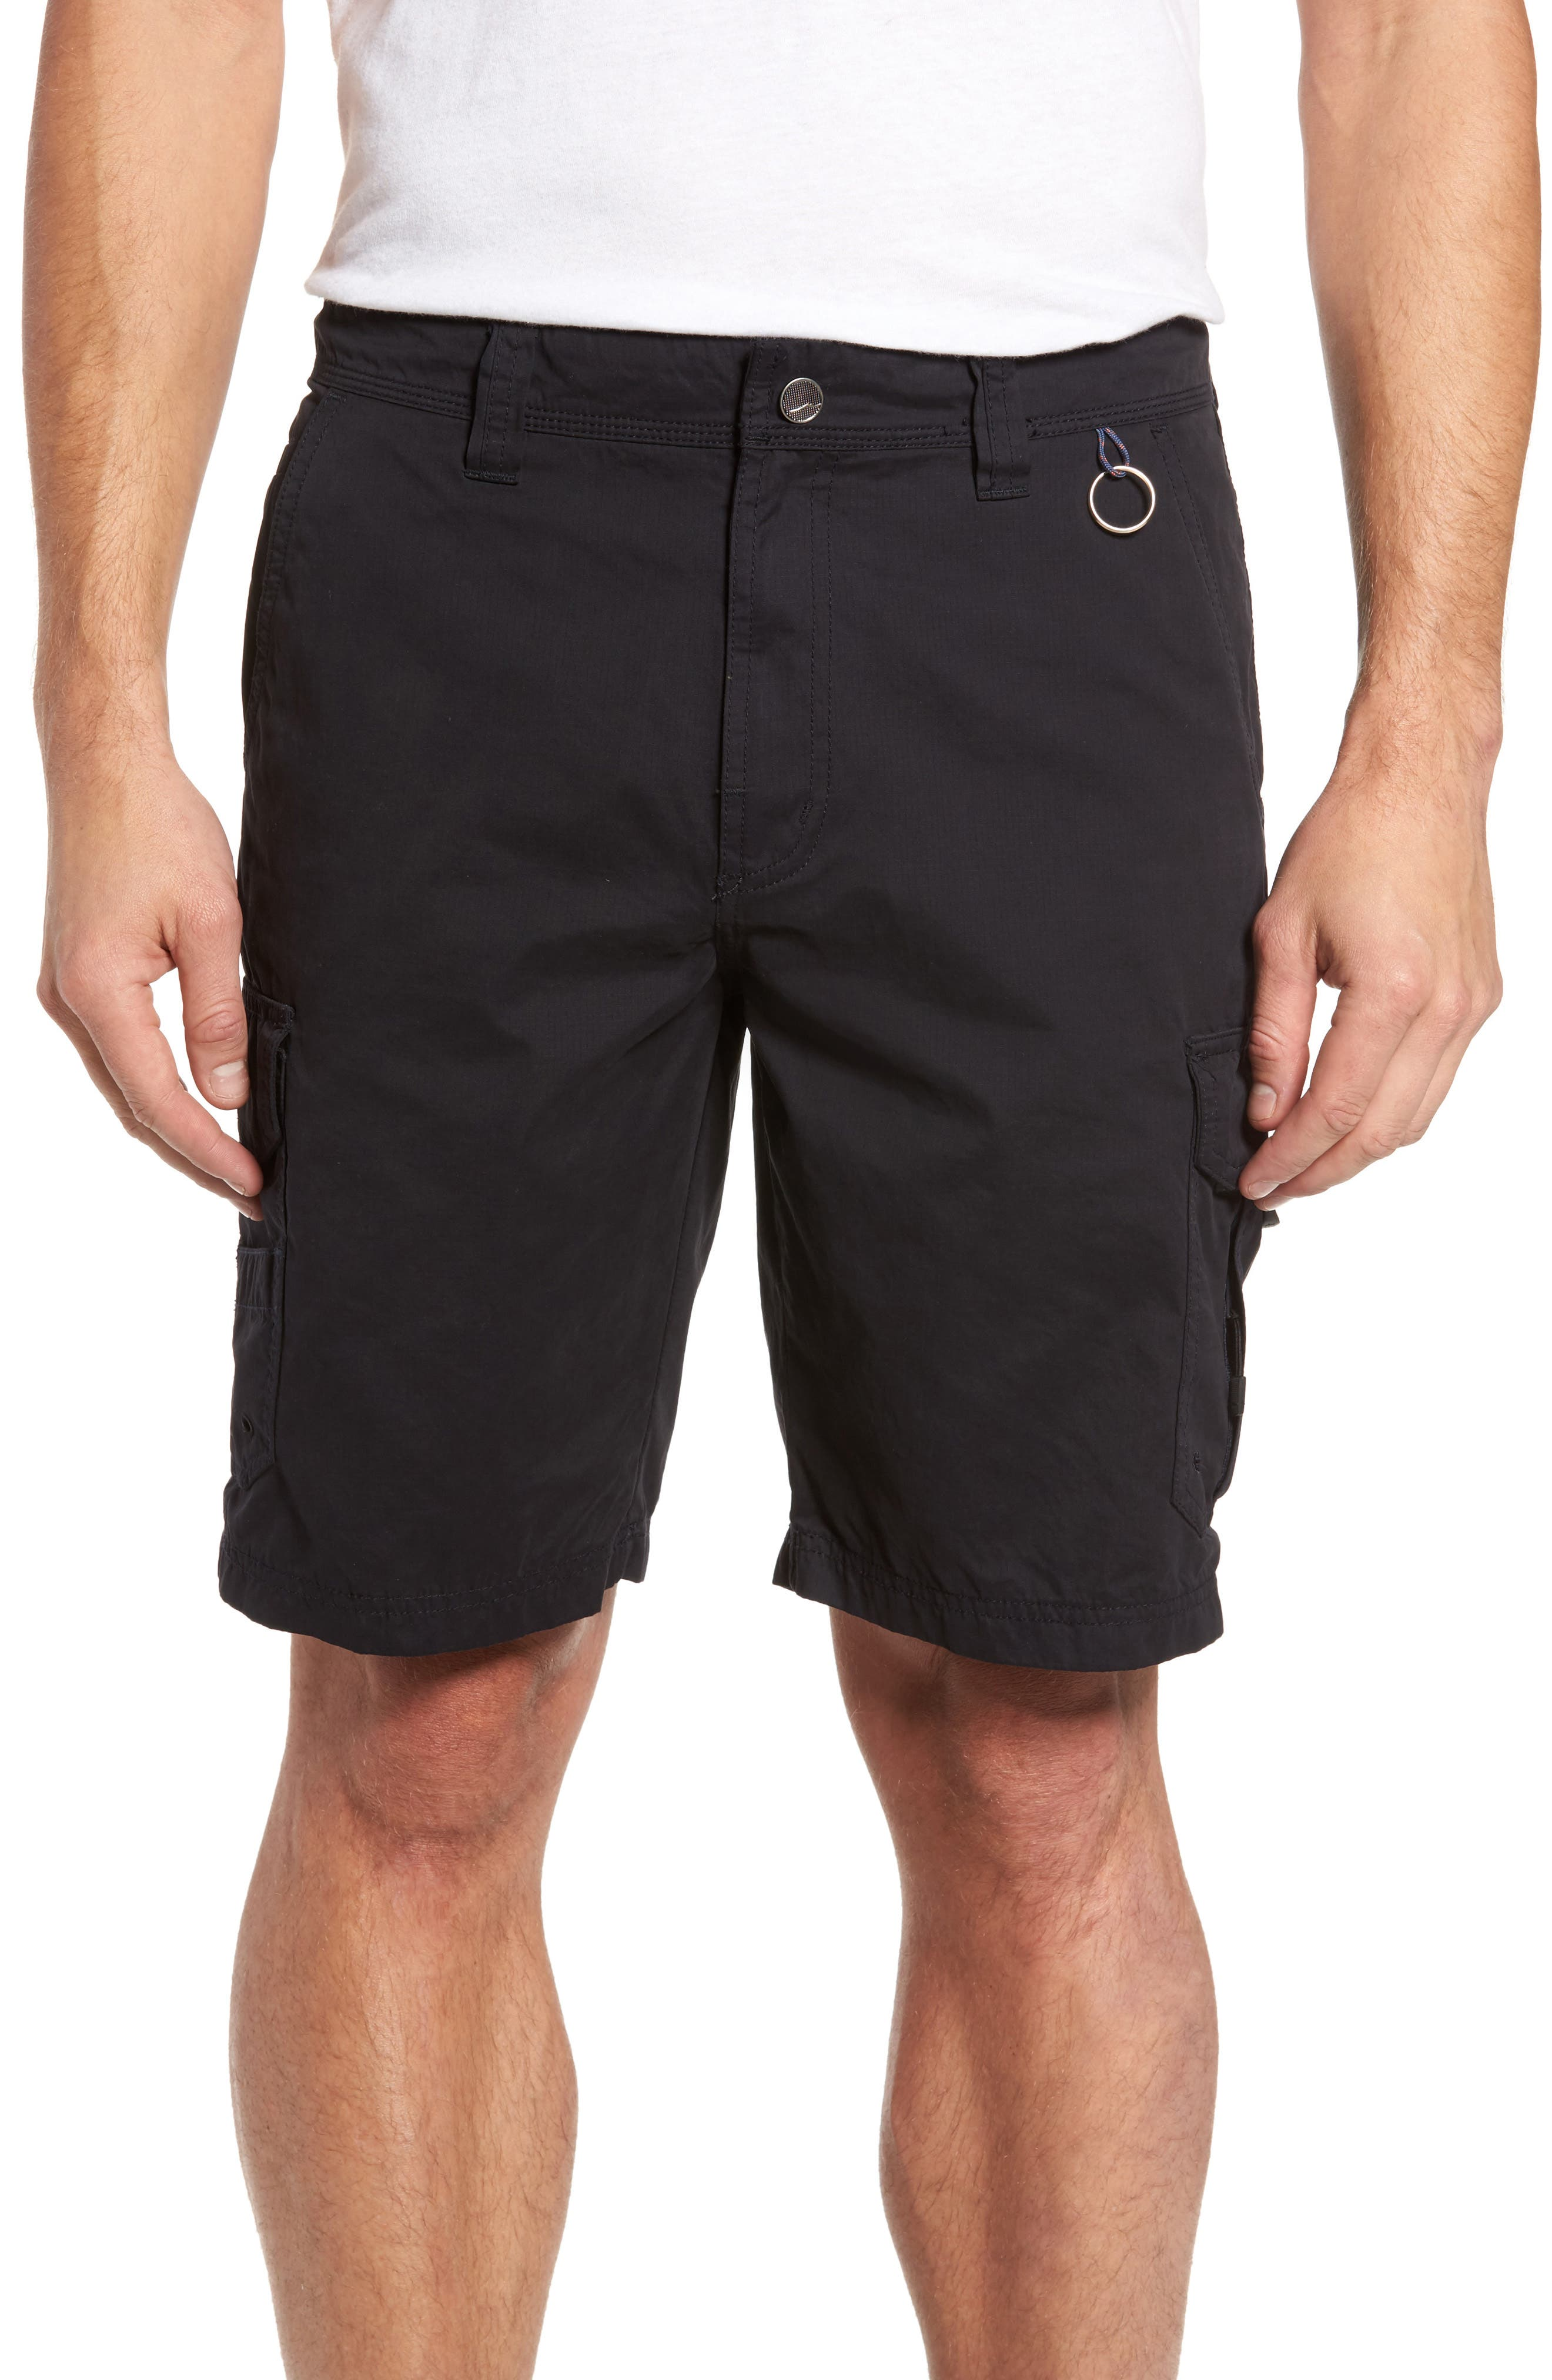 Cova Catch & Release Regular Fit Hybrid Cargo Shorts